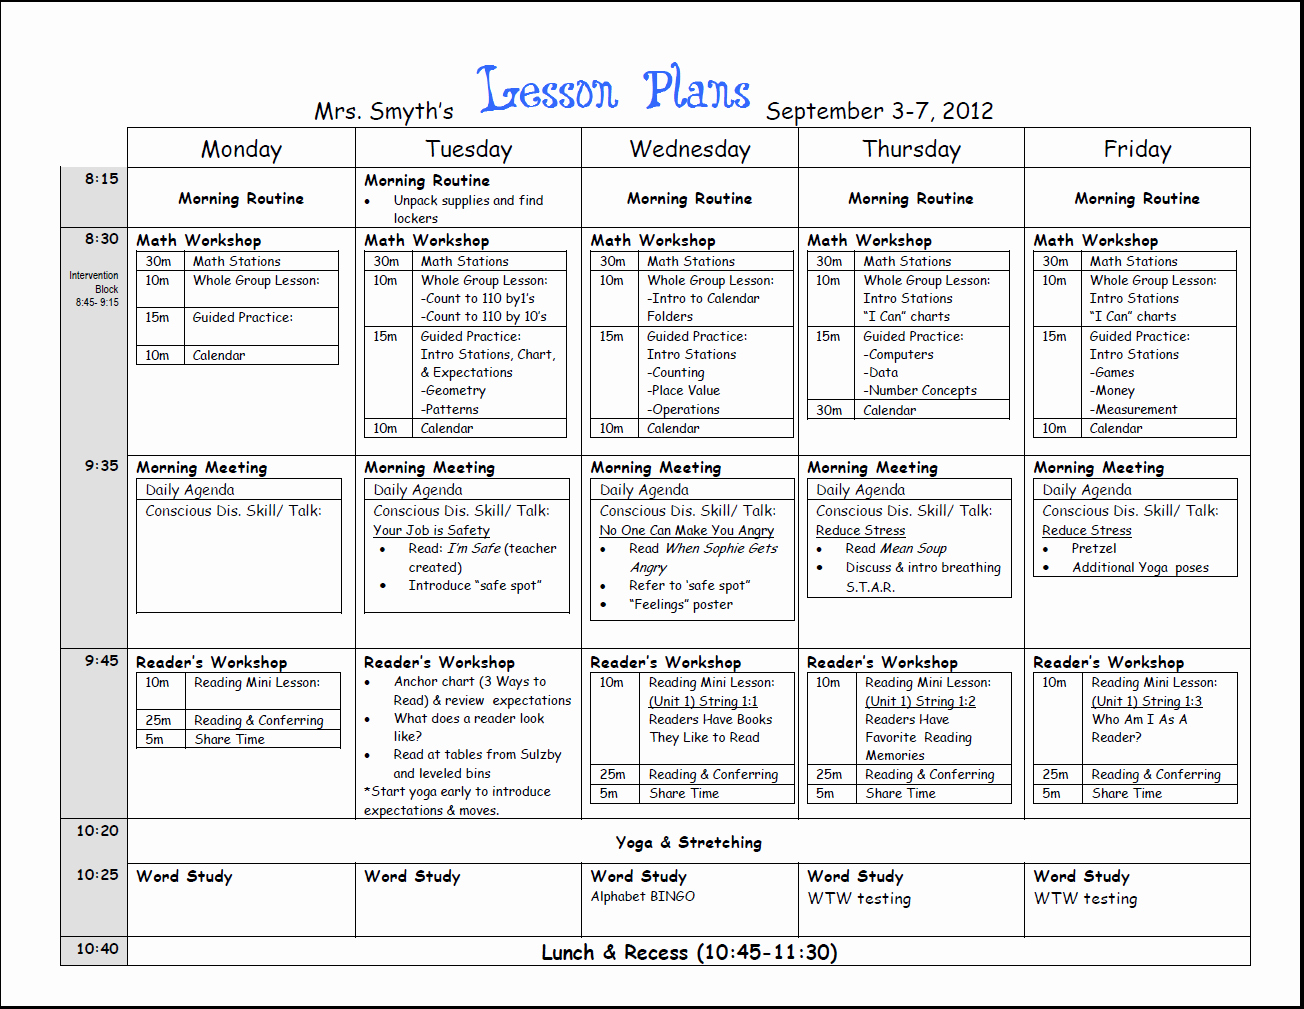 Teacher Weekly Lesson Plan Template Fresh Free Weekly Lesson Plan Template and Teacher Resources